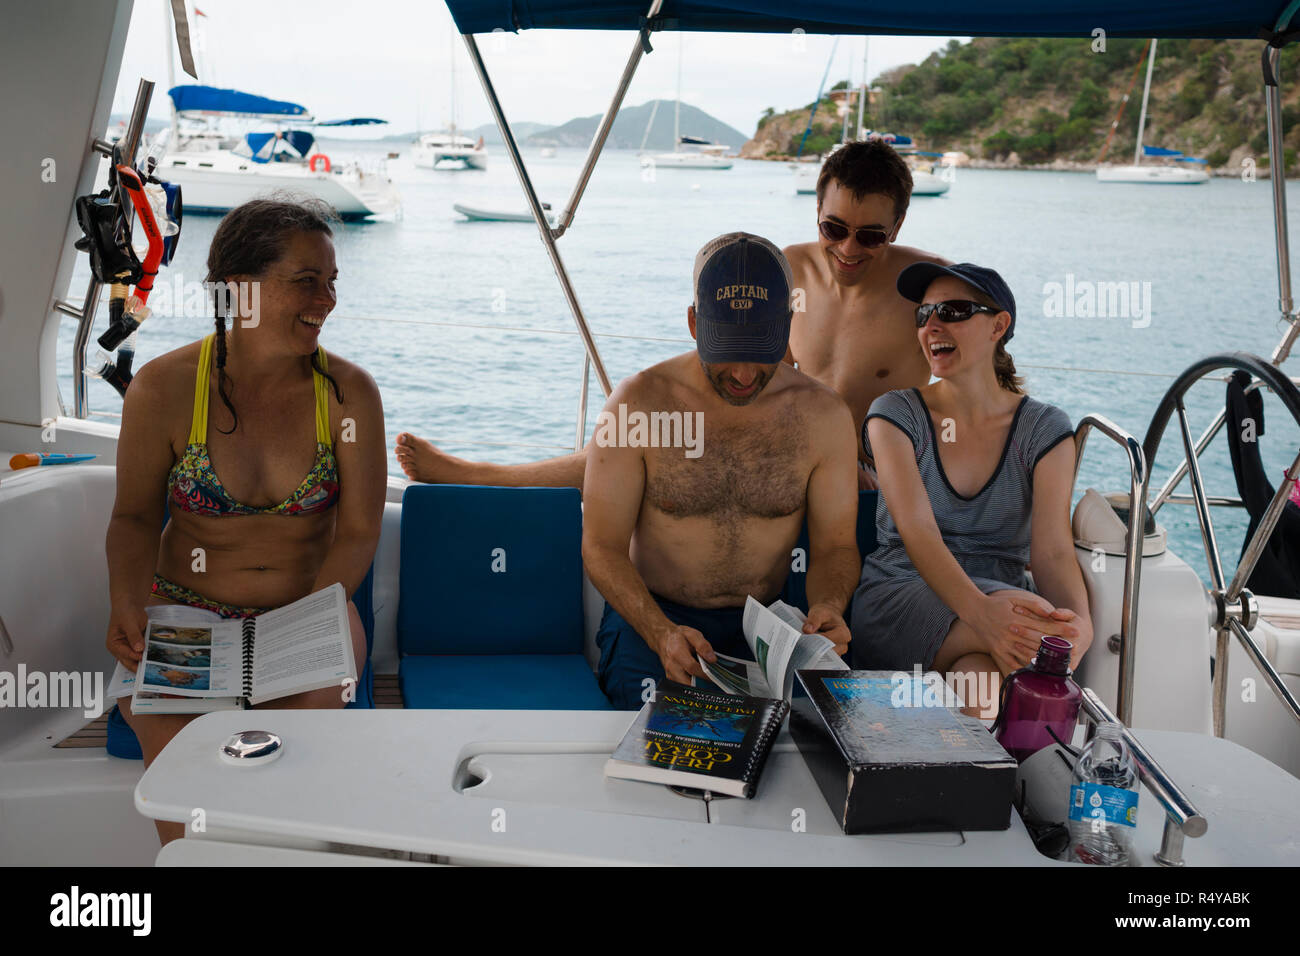 Friends having fun on rented boat during British Virgin Islands bareboat yacht  charter vacation.